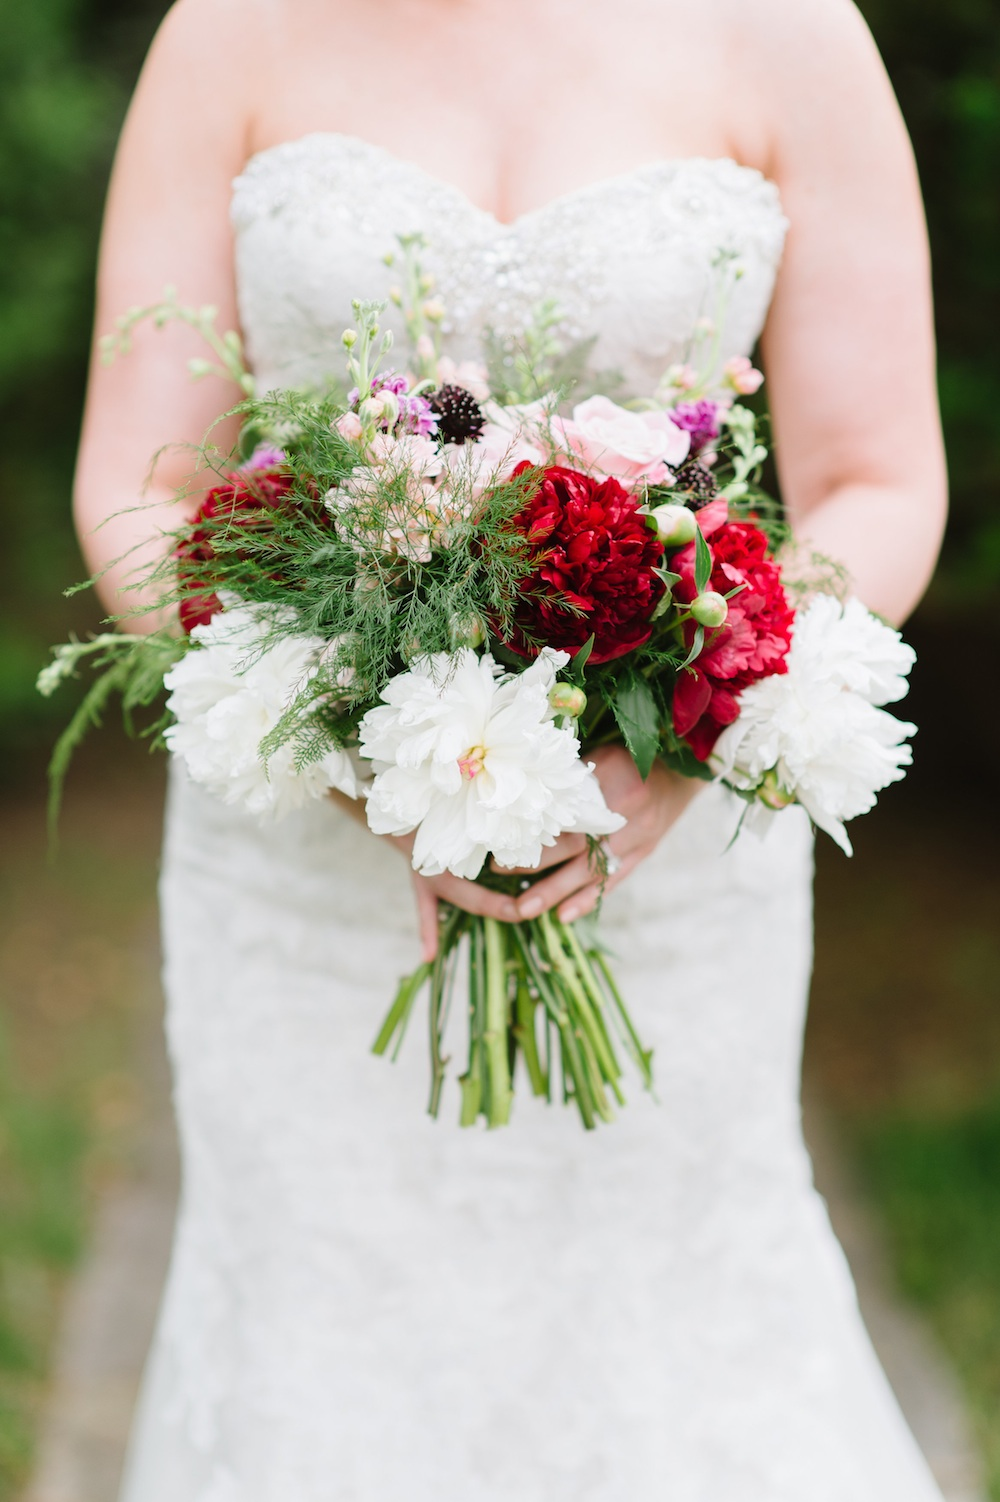 Woodland Inspired Wedding Bouquet {roses, peonies, peach stock, ferns, scabiosa, and larkspur} / designed by EightTreeStreet / photo by Natalie Franke Photography